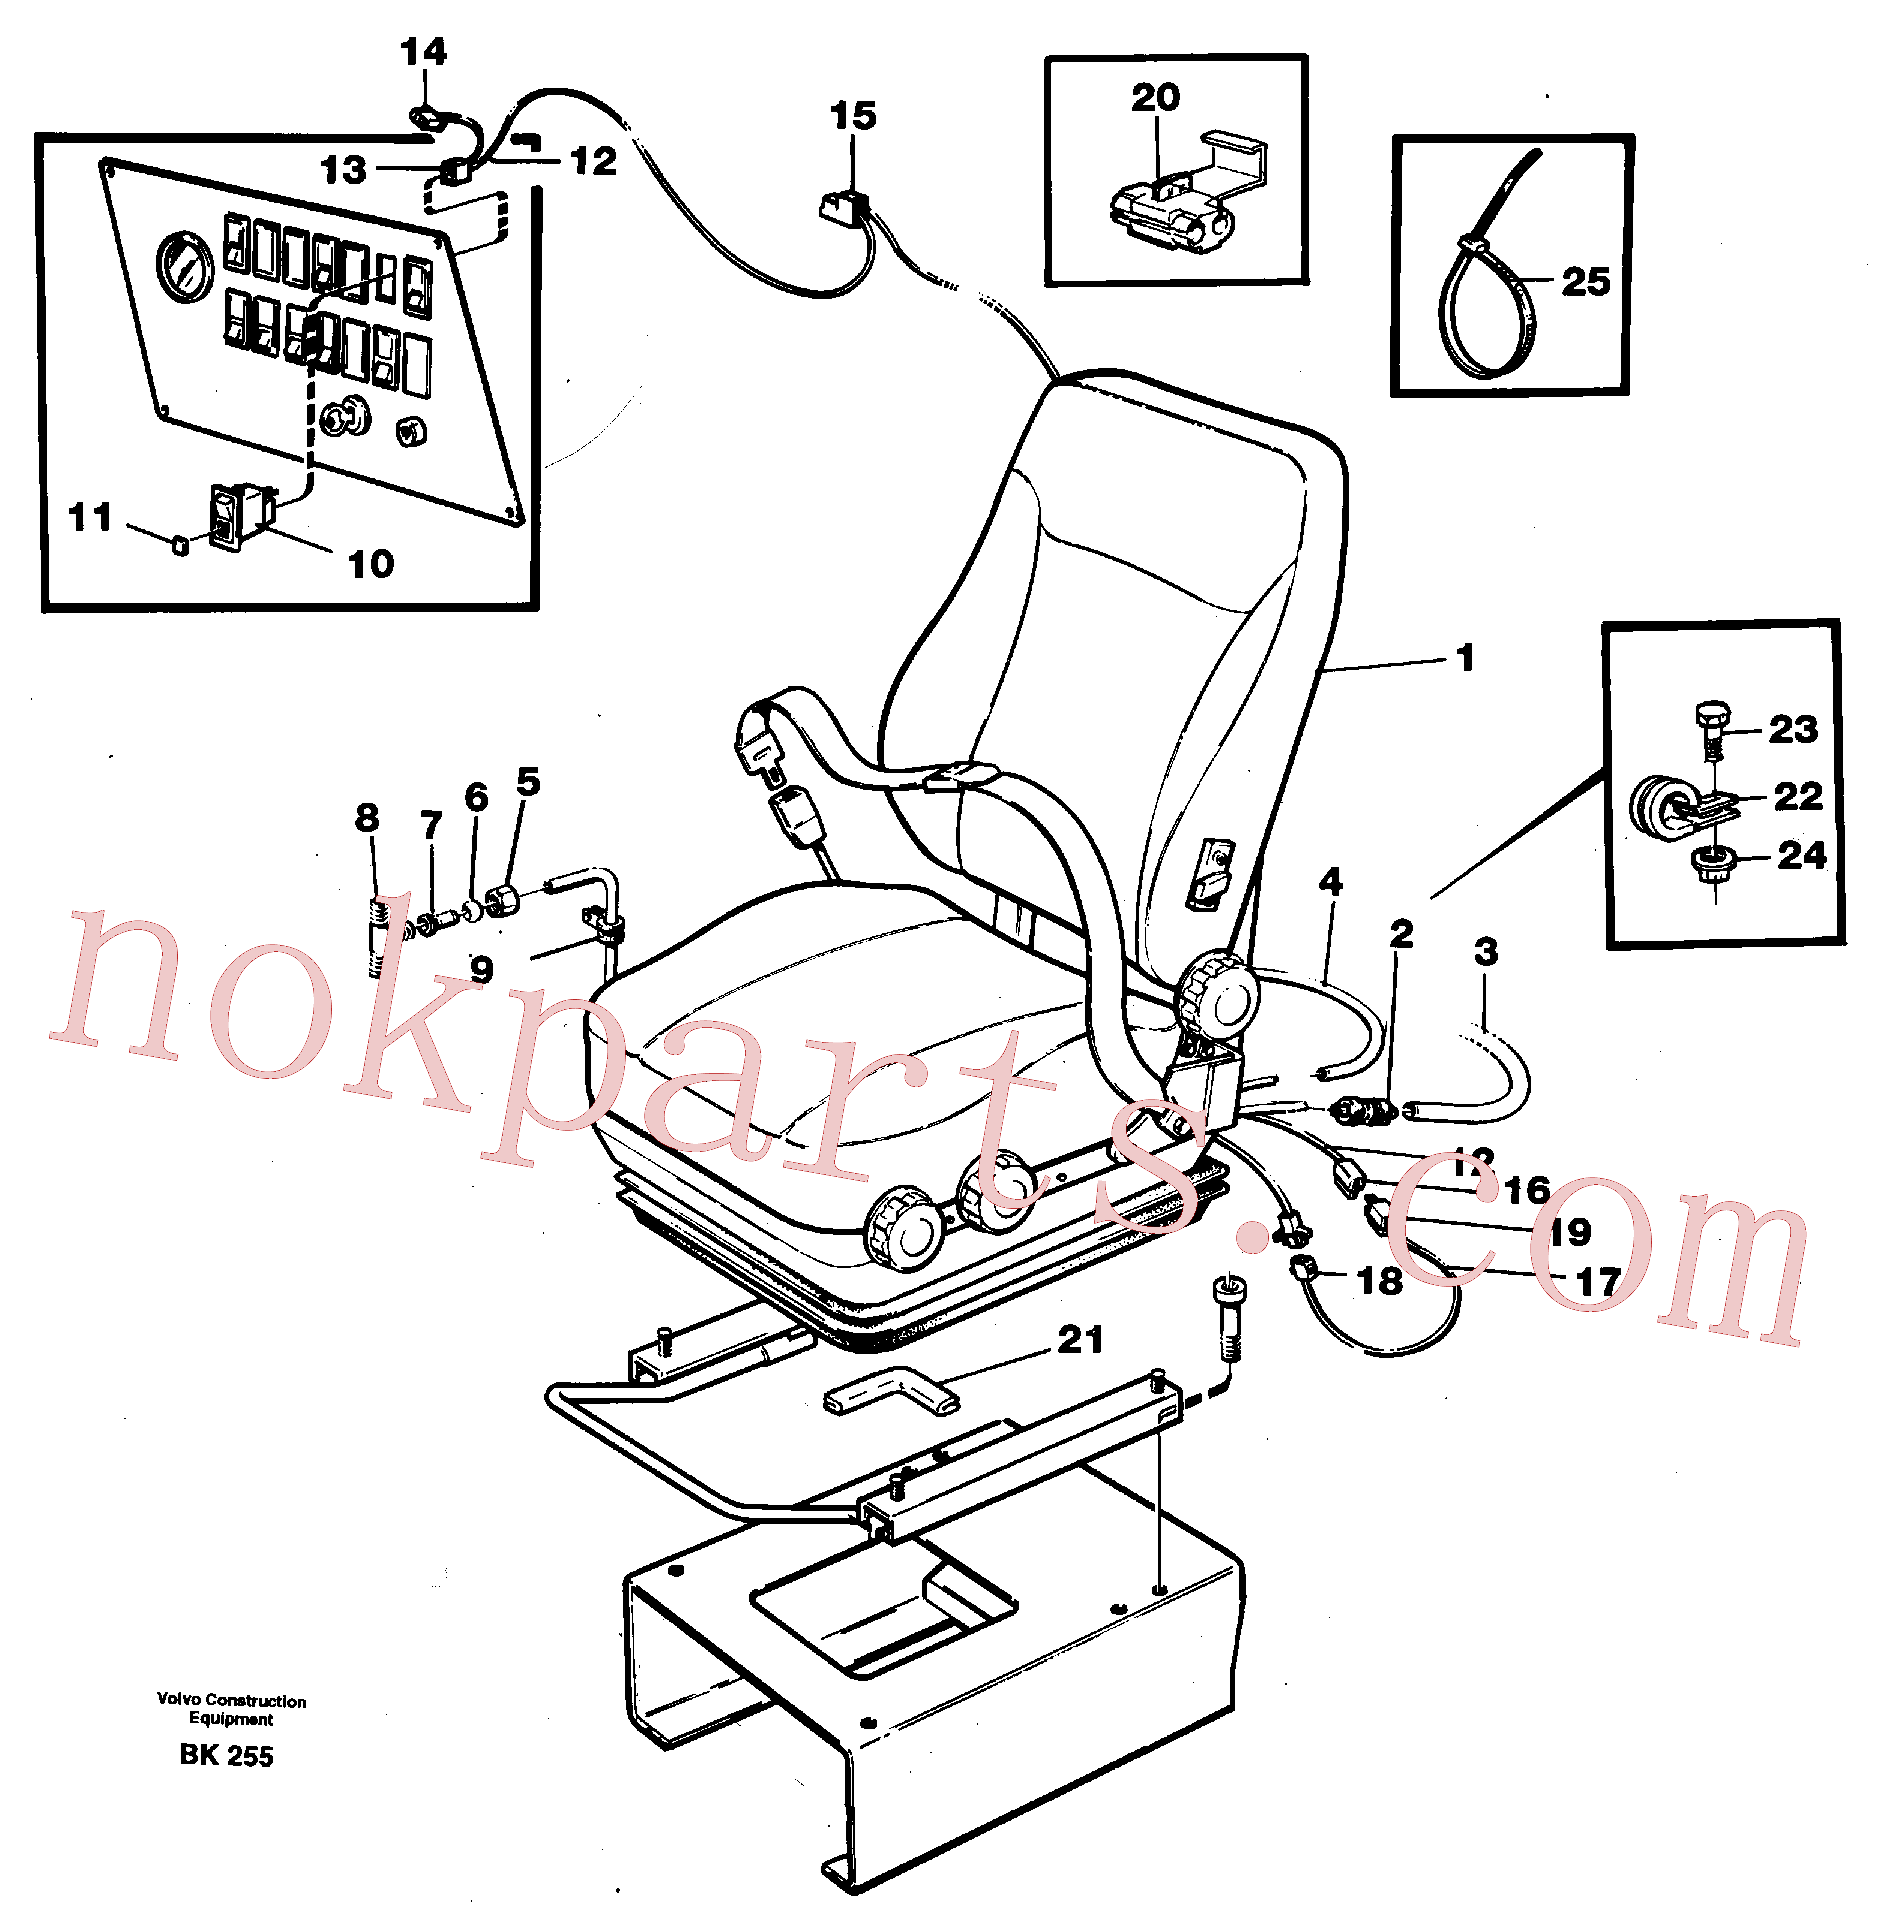 VOE14013853 for Volvo Operator's seat, air suspensioned and heated(BK255 assembly)